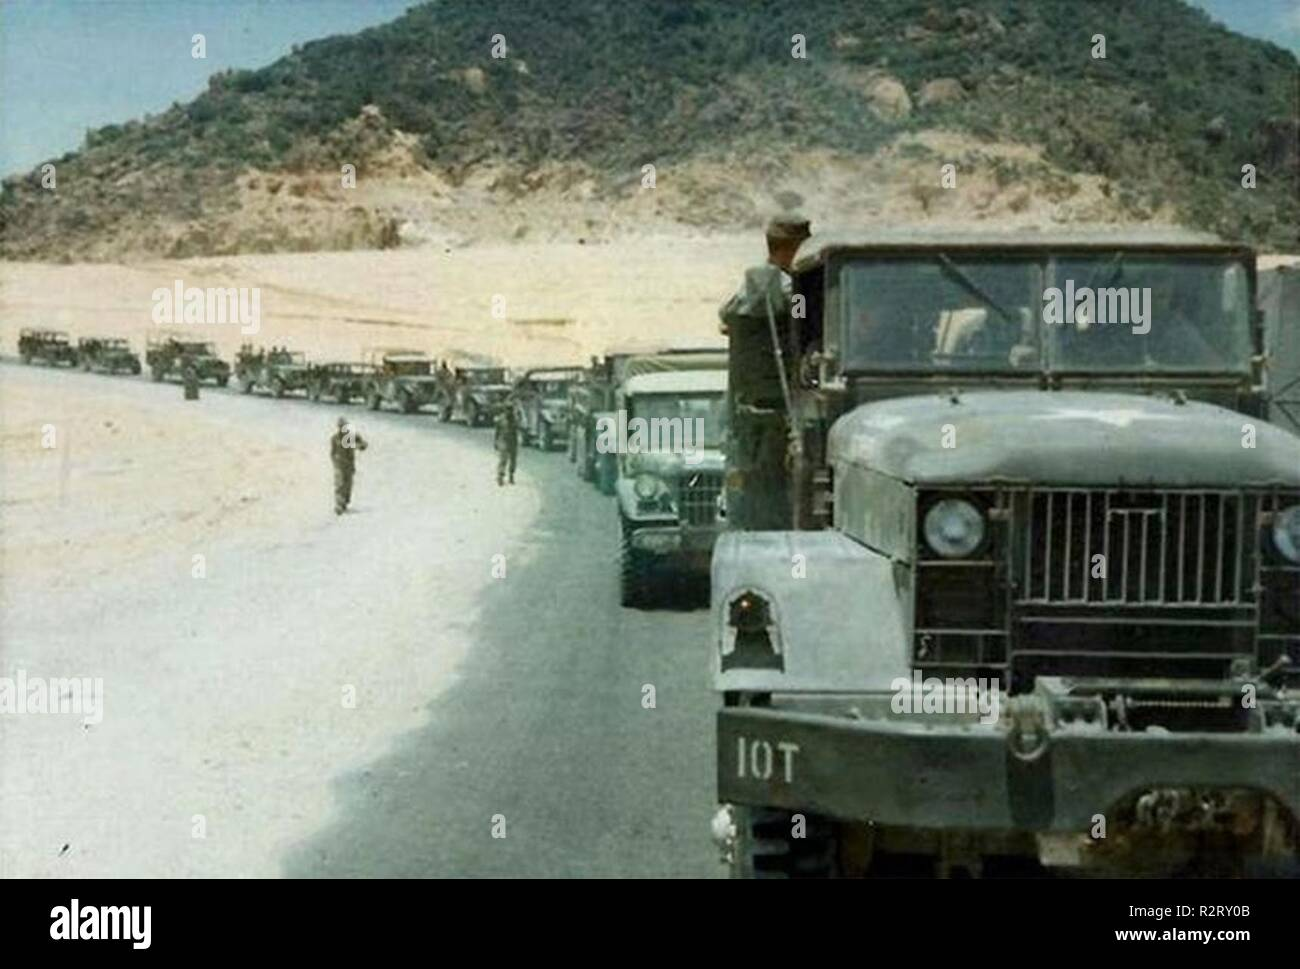 SAIGON, Vietnam - The 1st Logistical Command 379th Transportation Company line up in a convoy to deliver food and ammo to the Soldiers on the frontlines, circa 1969. The trucks, known as the minesweepers ran ahead of the group, providing logistical support against the North Vietnamese Communist regime. - Stock Image